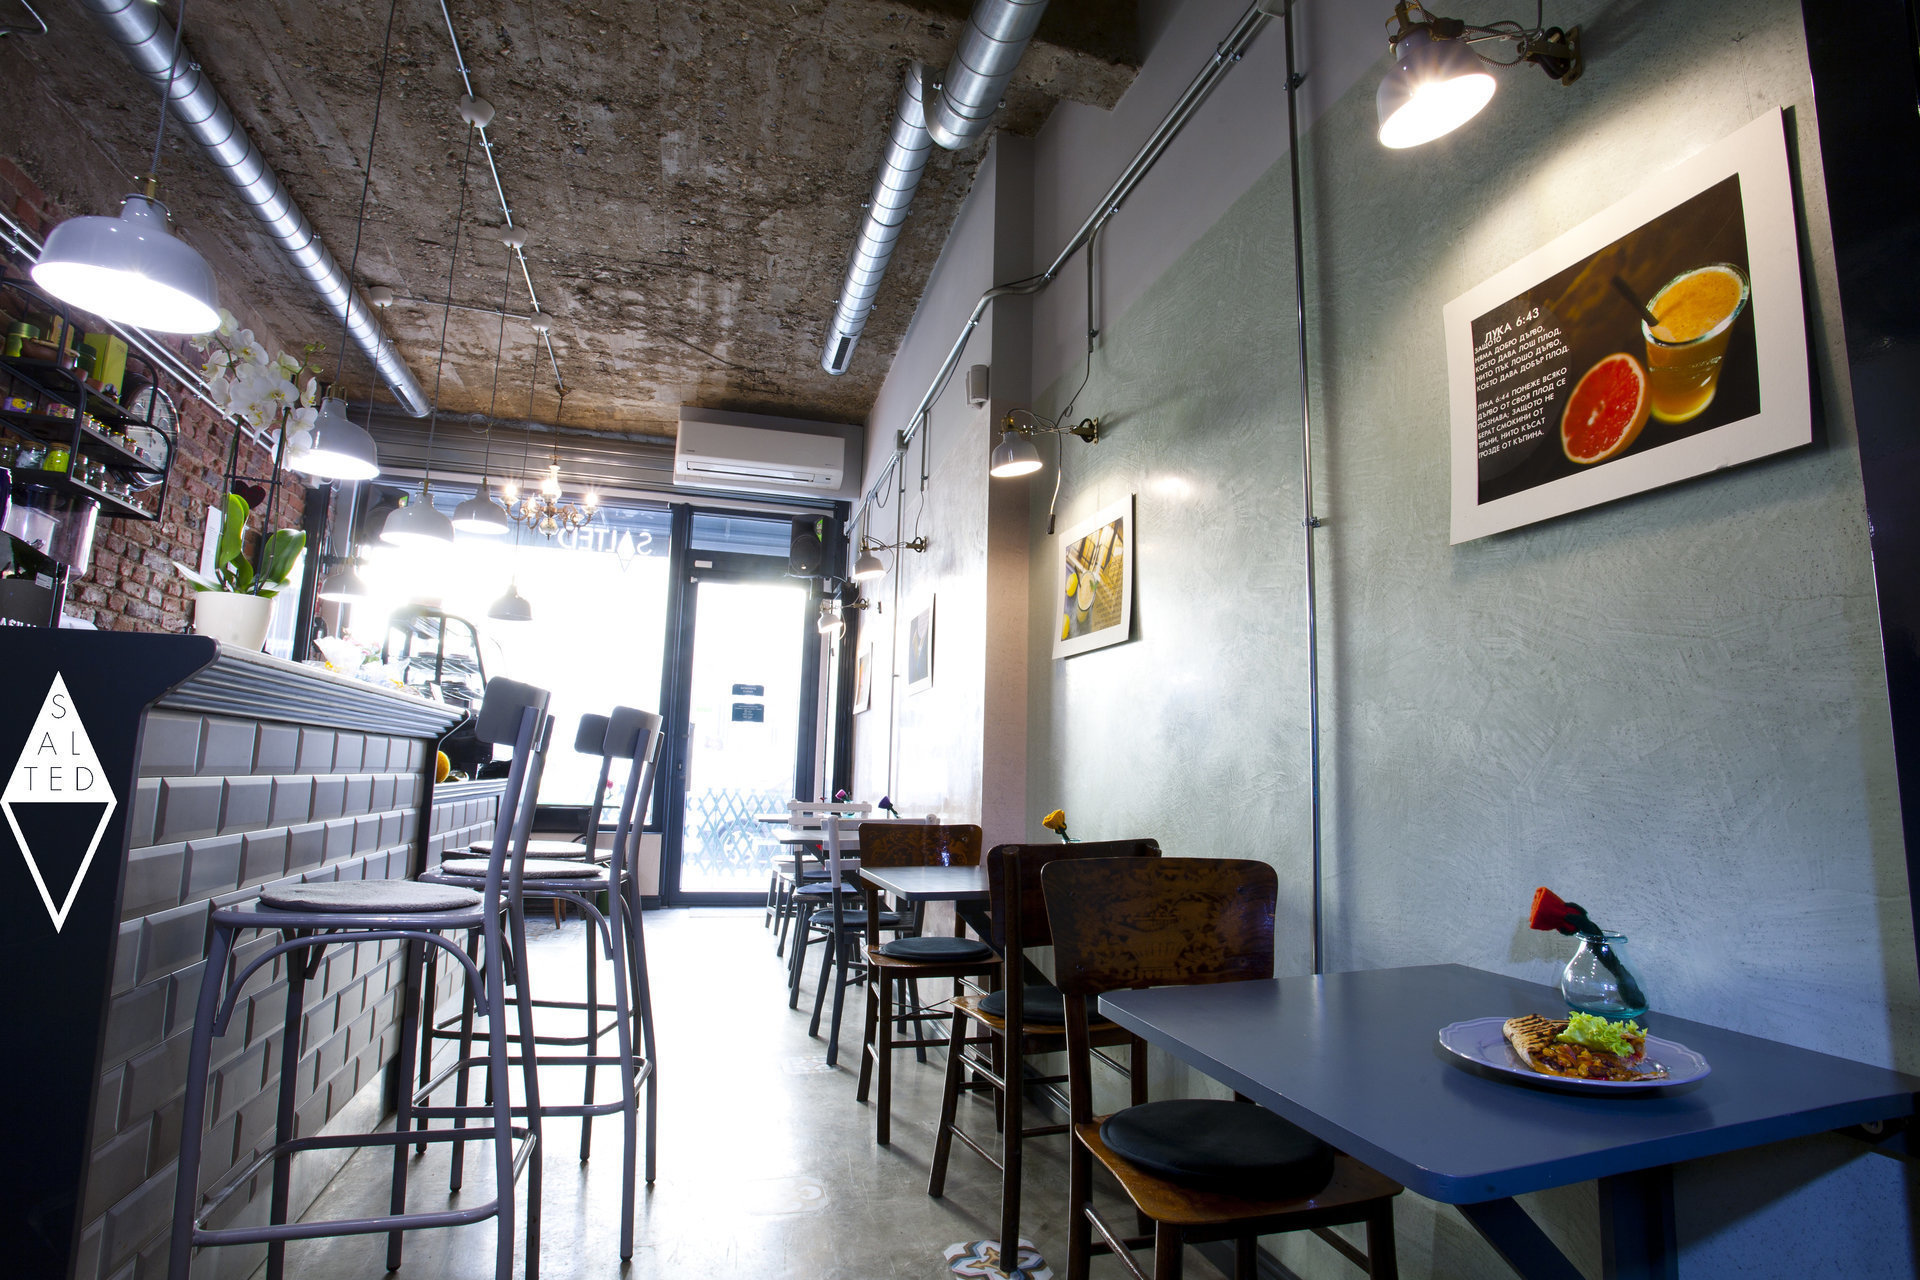 Salted Café Sofia: A Work-Friendly Place in Sofia